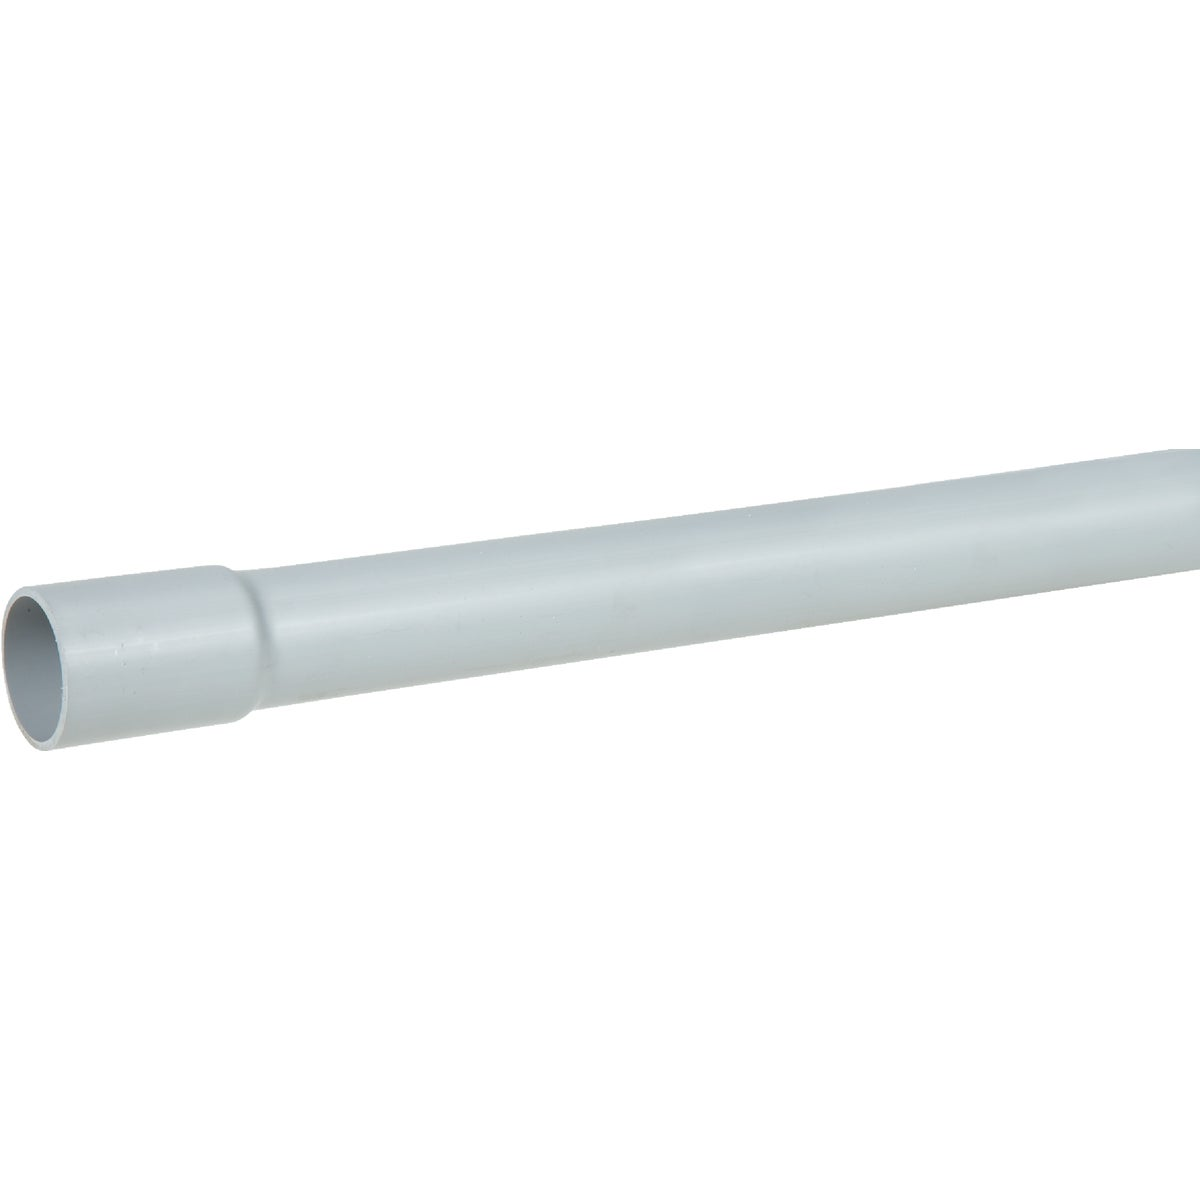 "3"" SCH40 10' CONDUIT - 49013-010 by Prime Conduit"